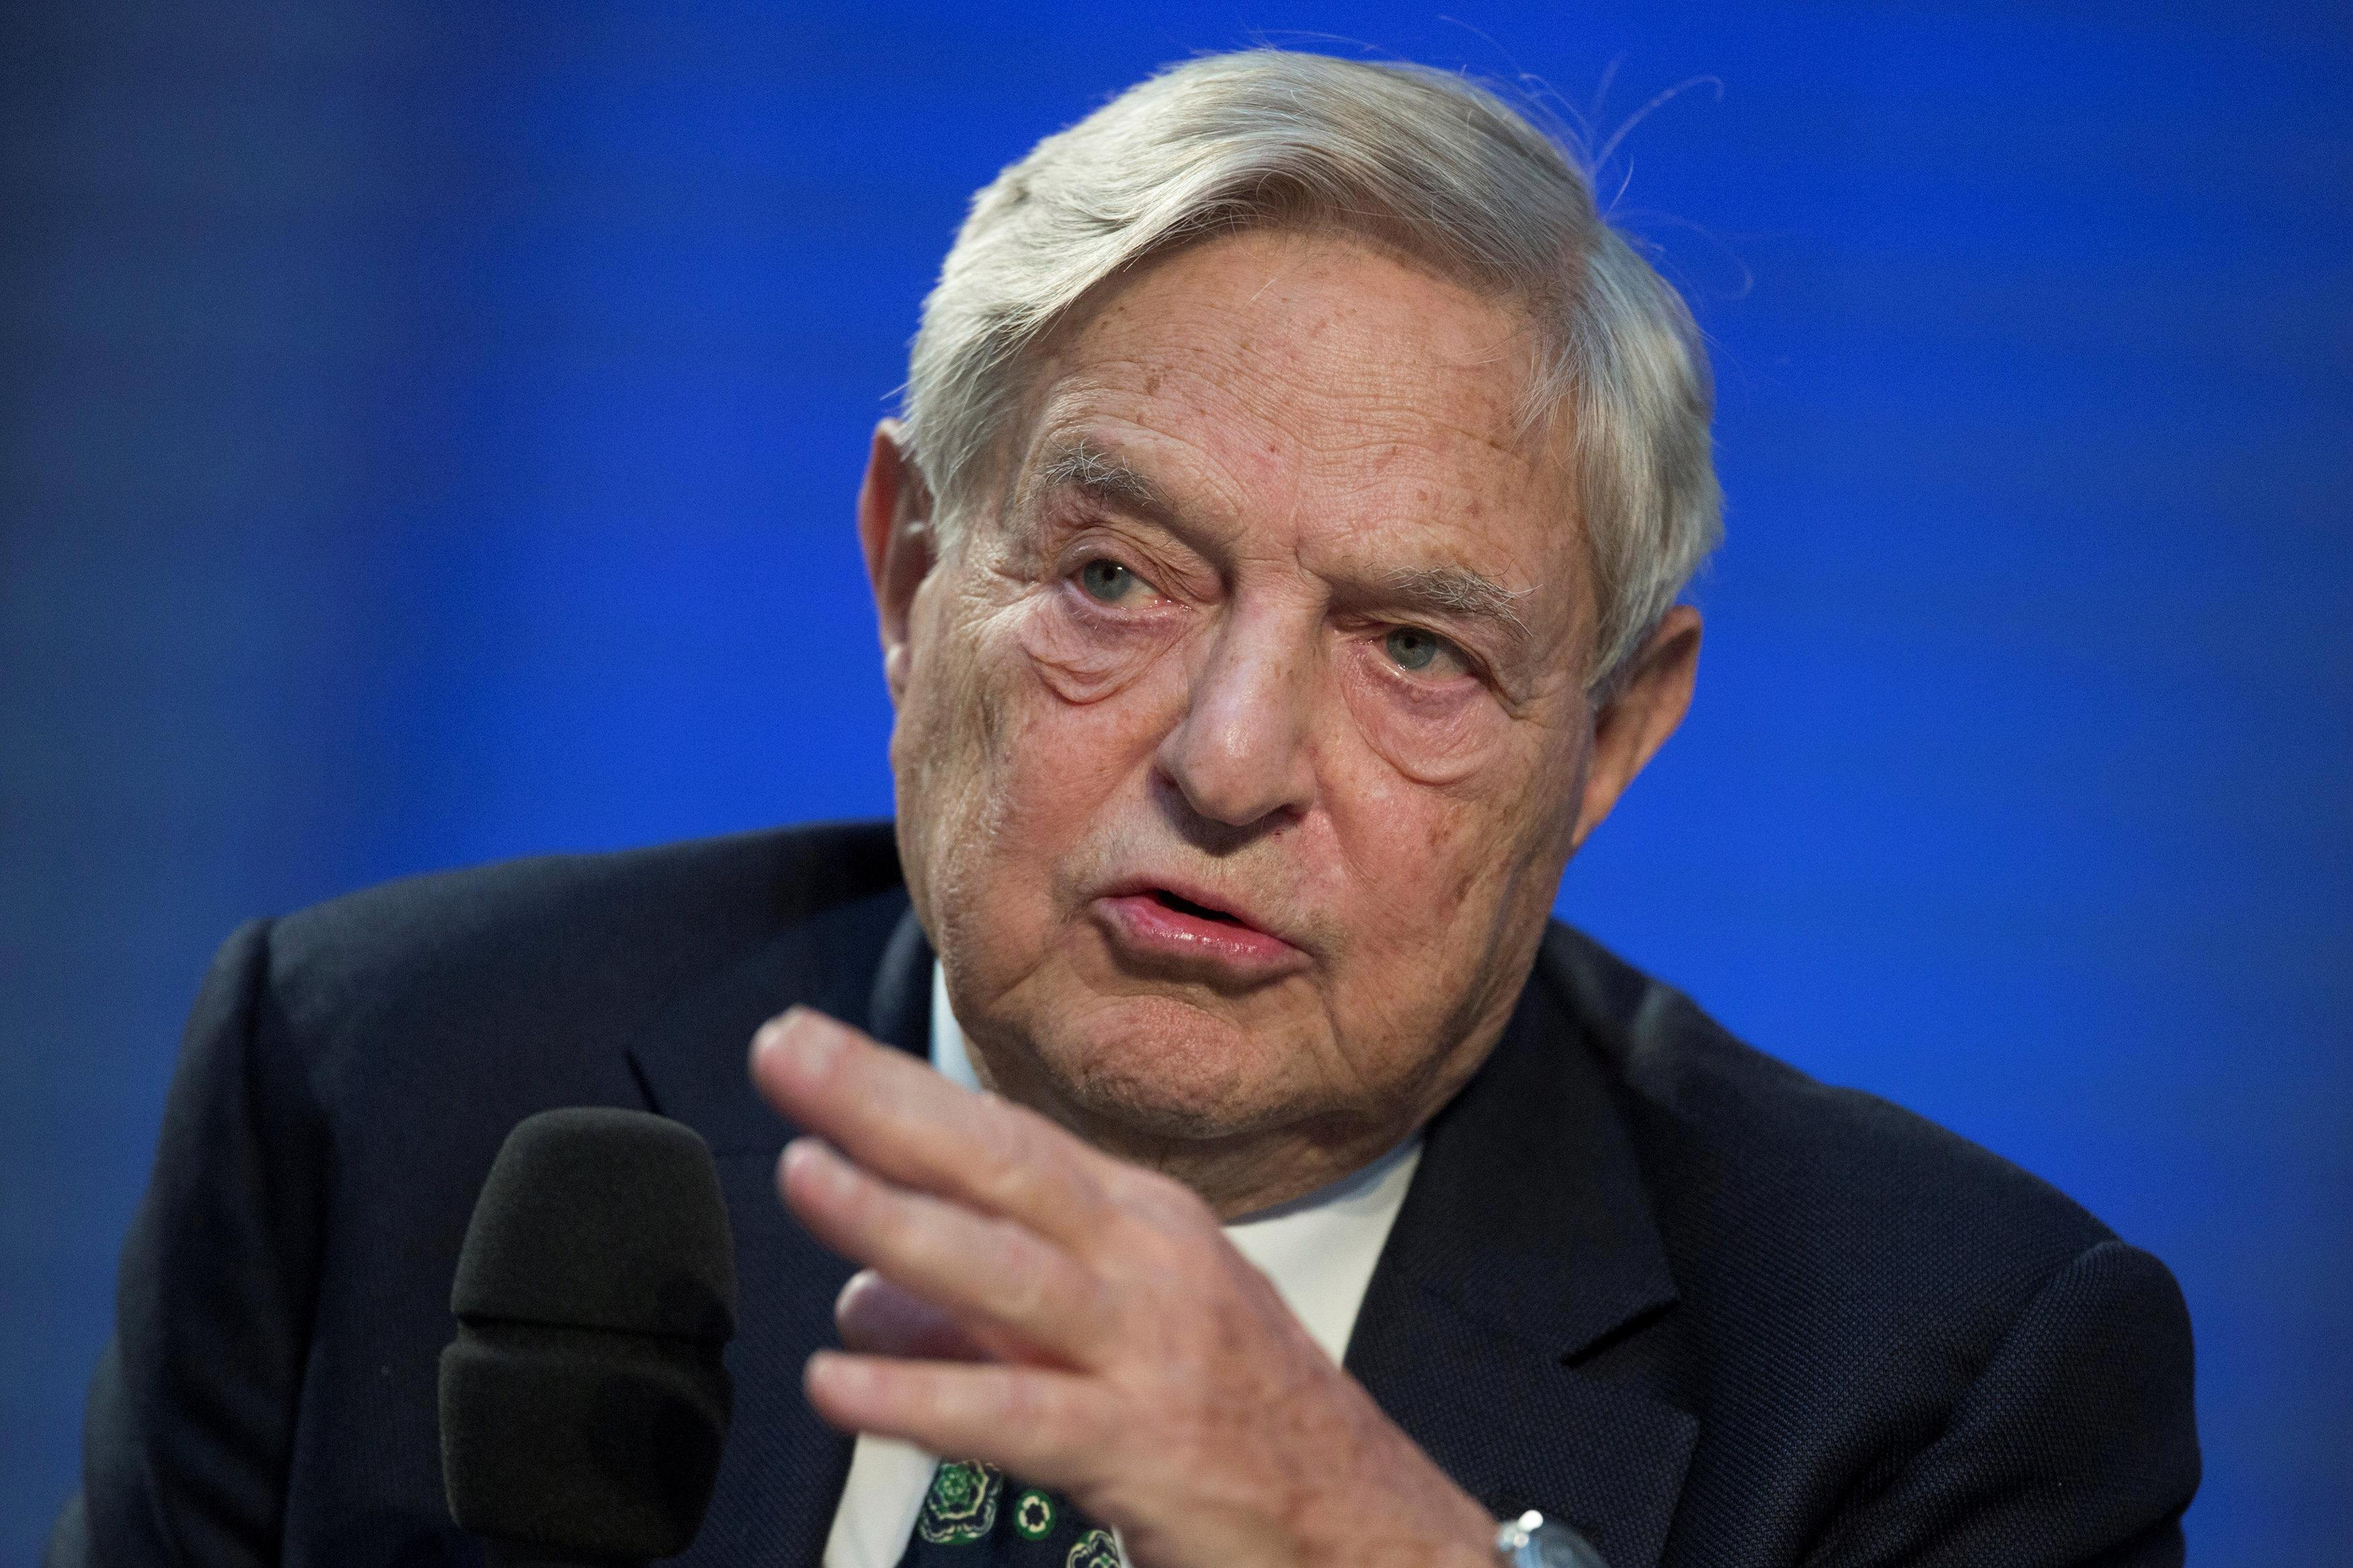 Billionaire George Soros defends £400,000 donation to pro-EU campaign and claims 'love for Britain' is behind anti-Brexit drive